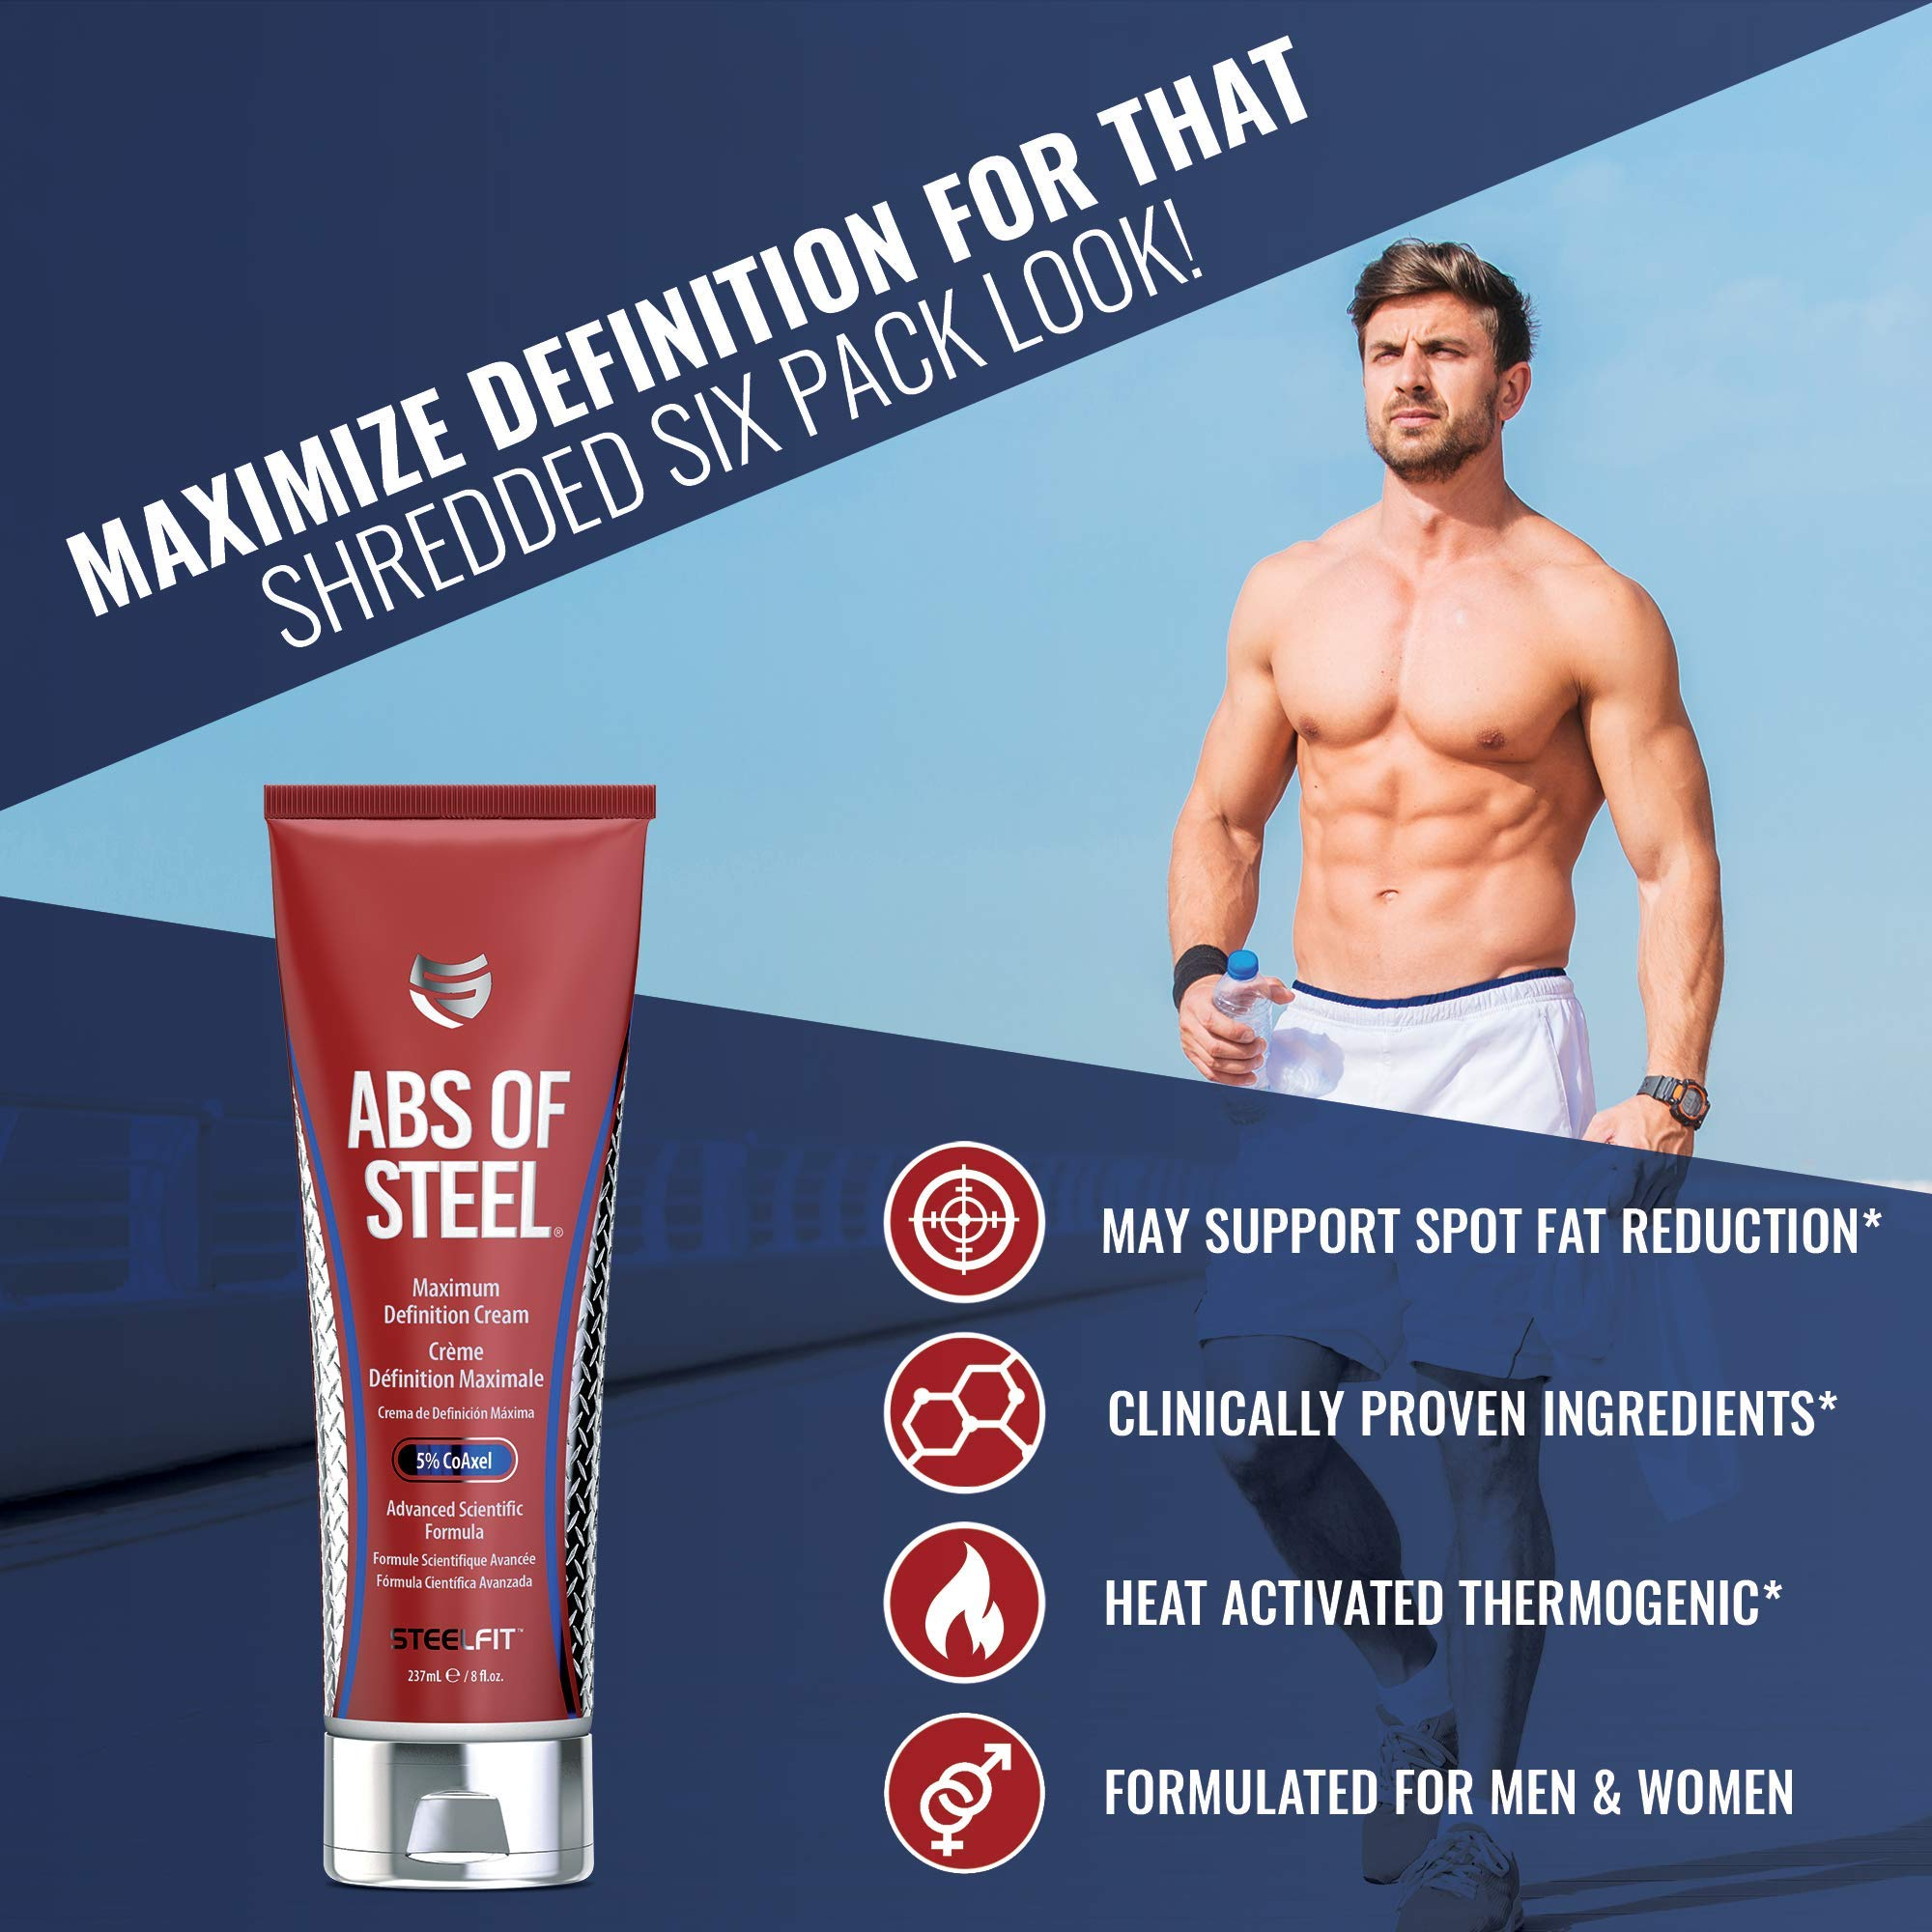 SteelFit Abs of Steel Maximum Definition Cream with 5% Coaxel, 8 fl oz (237ml). by SteelFit (Image #3)